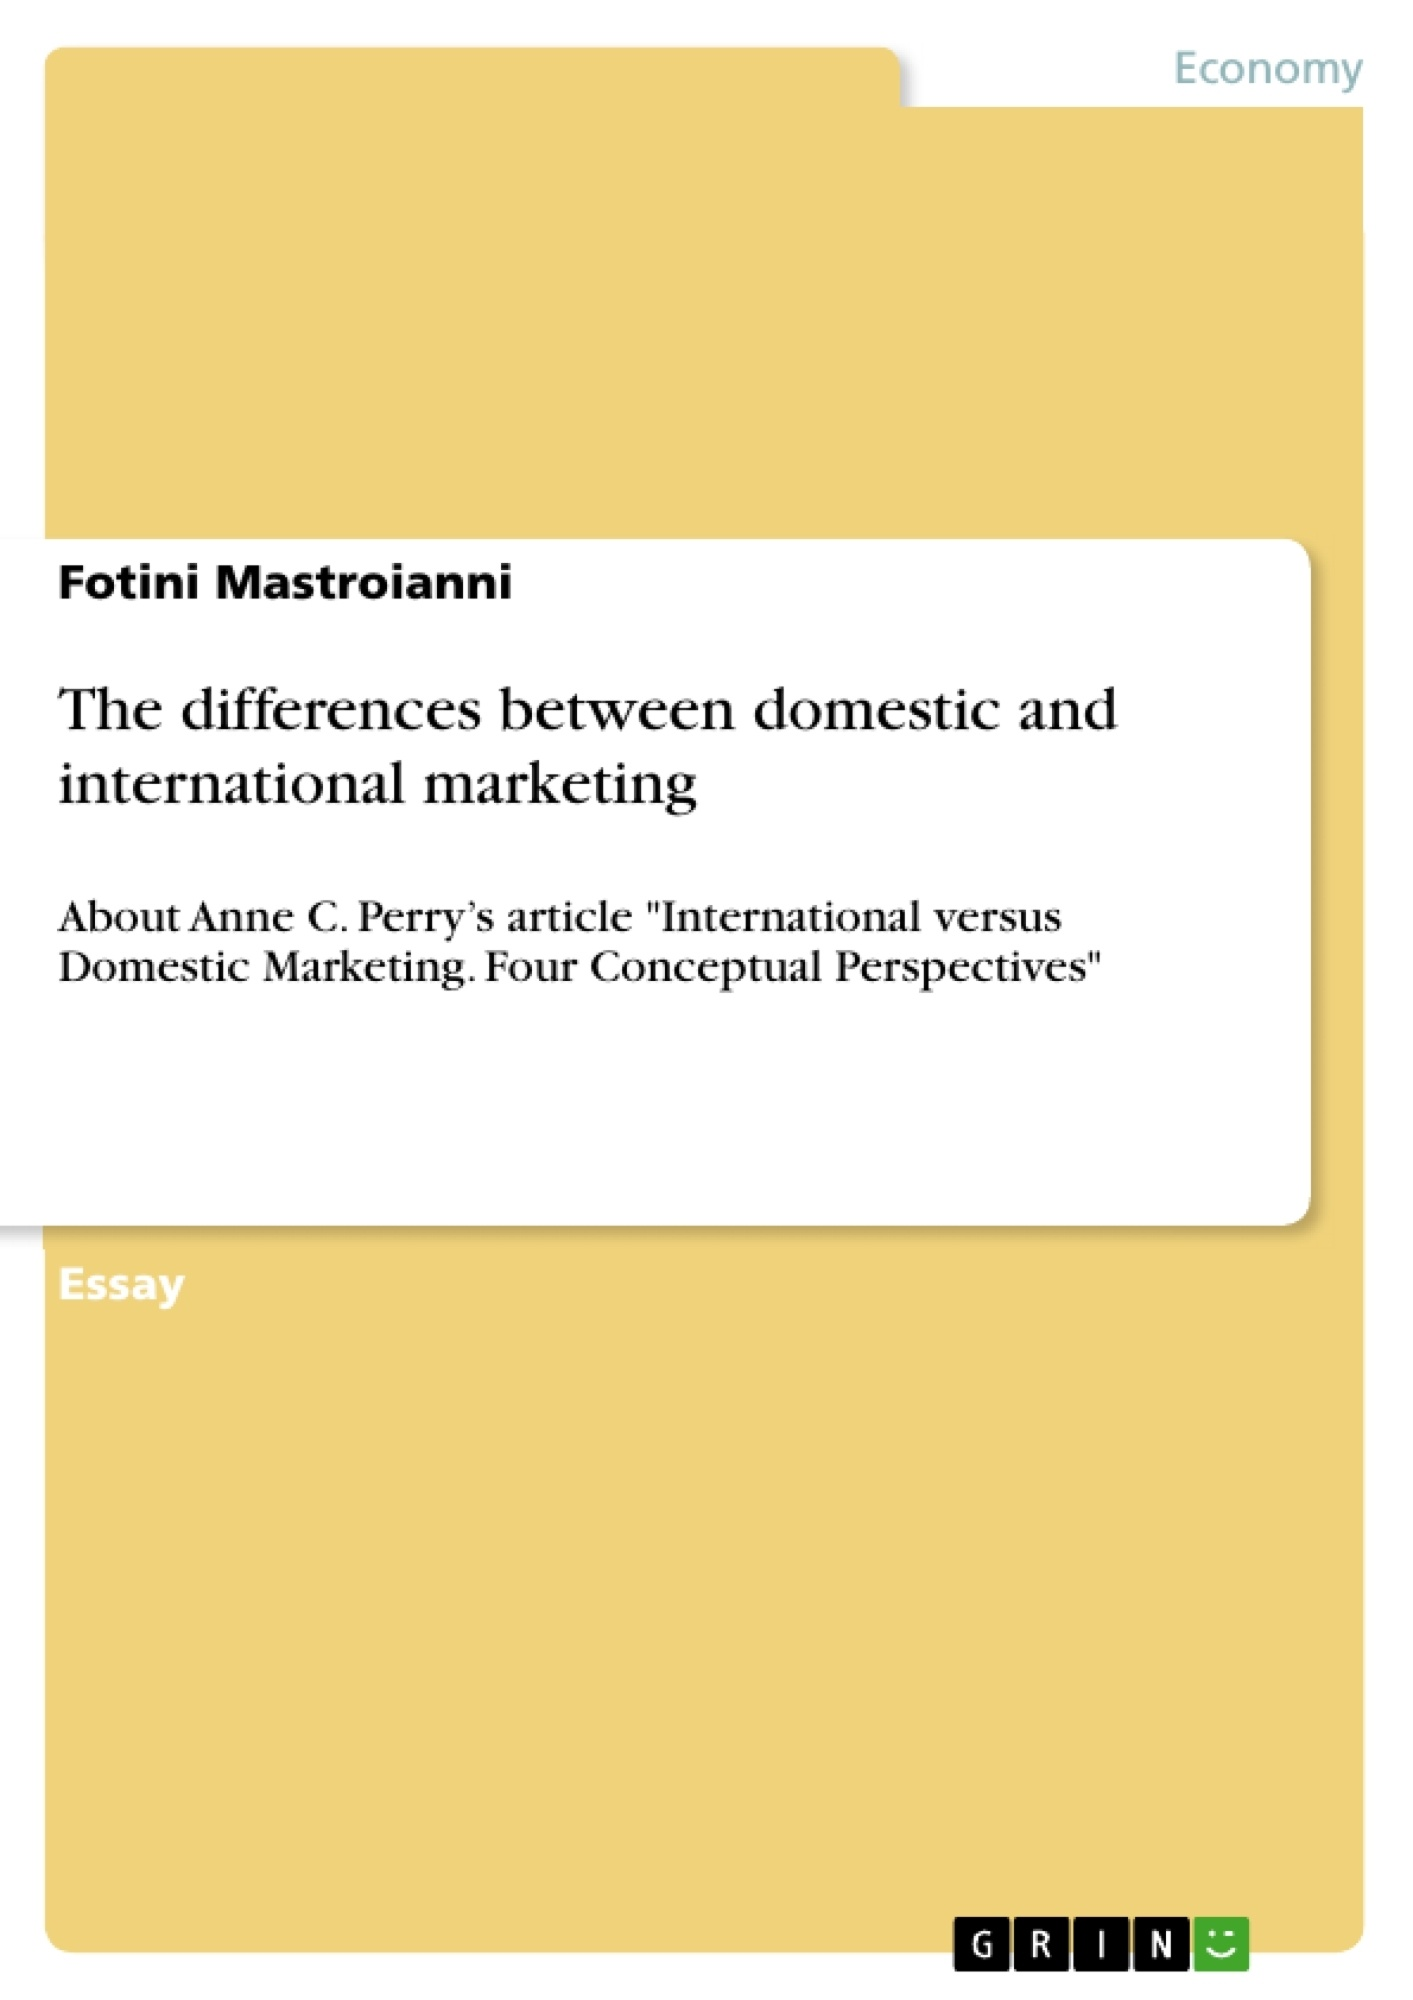 Title: The differences between domestic and international marketing